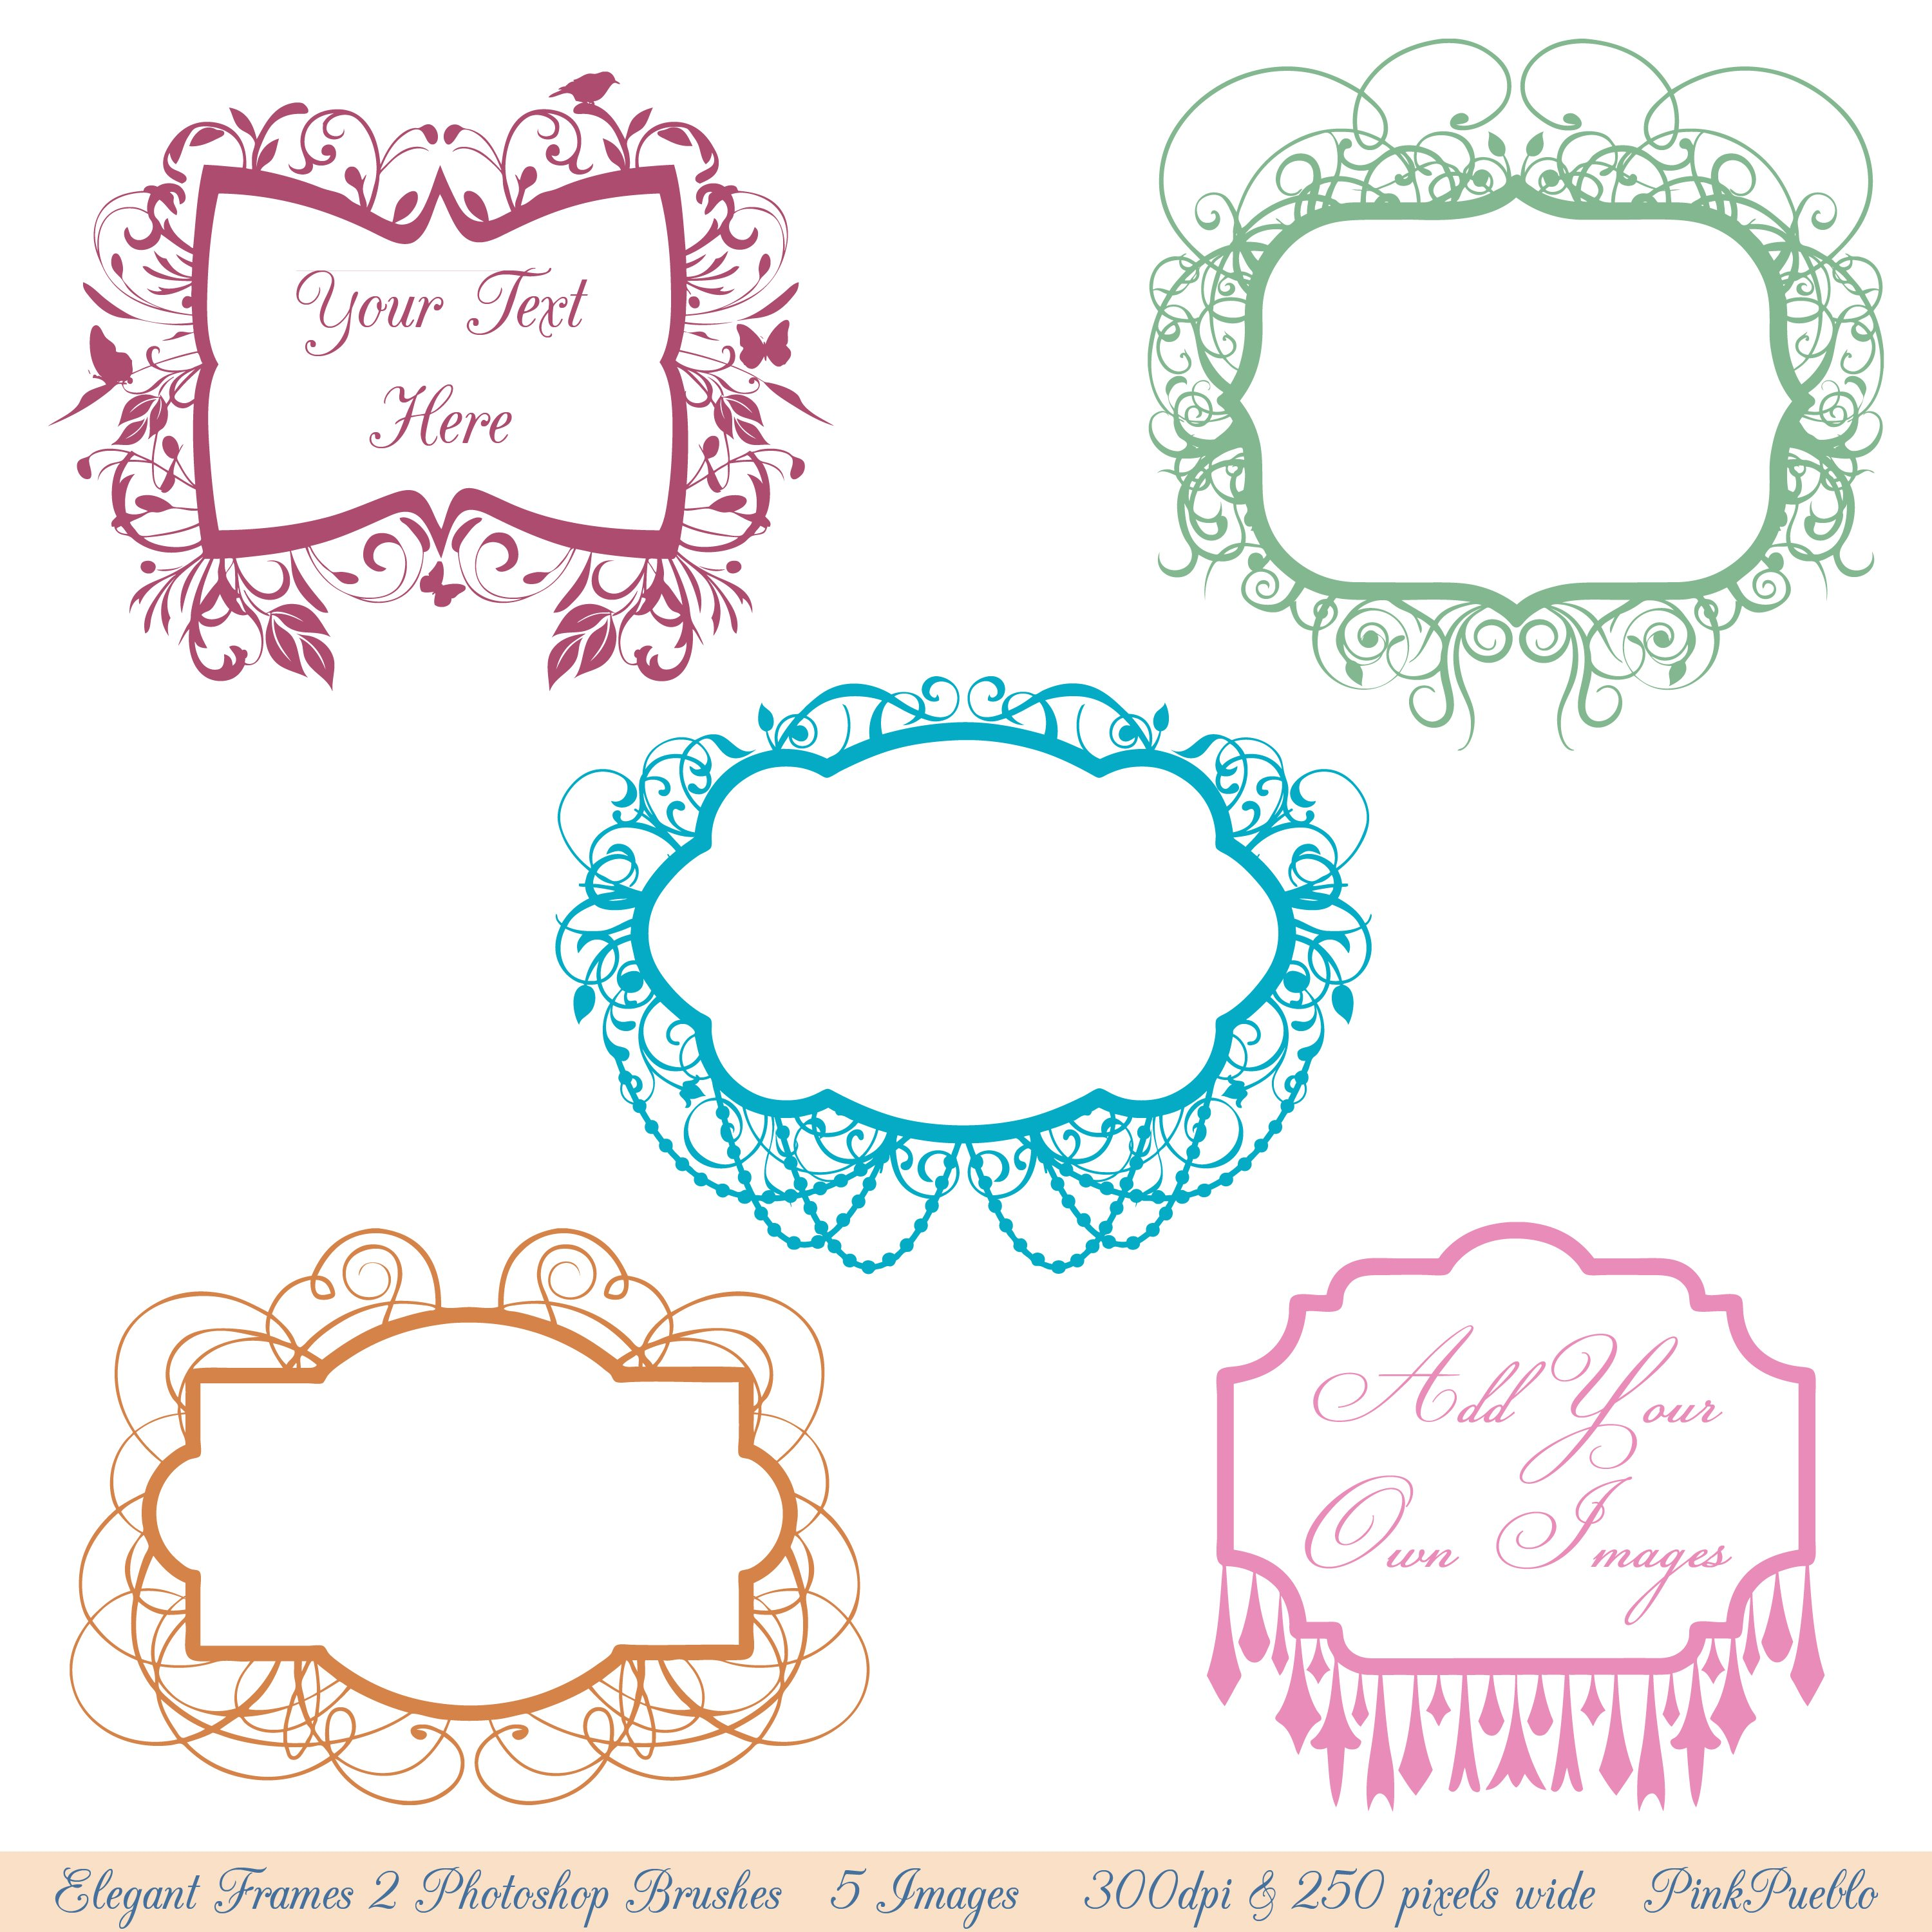 Chandelier Frames Photoshop Brushes ~ Brushes ~ Creative Market